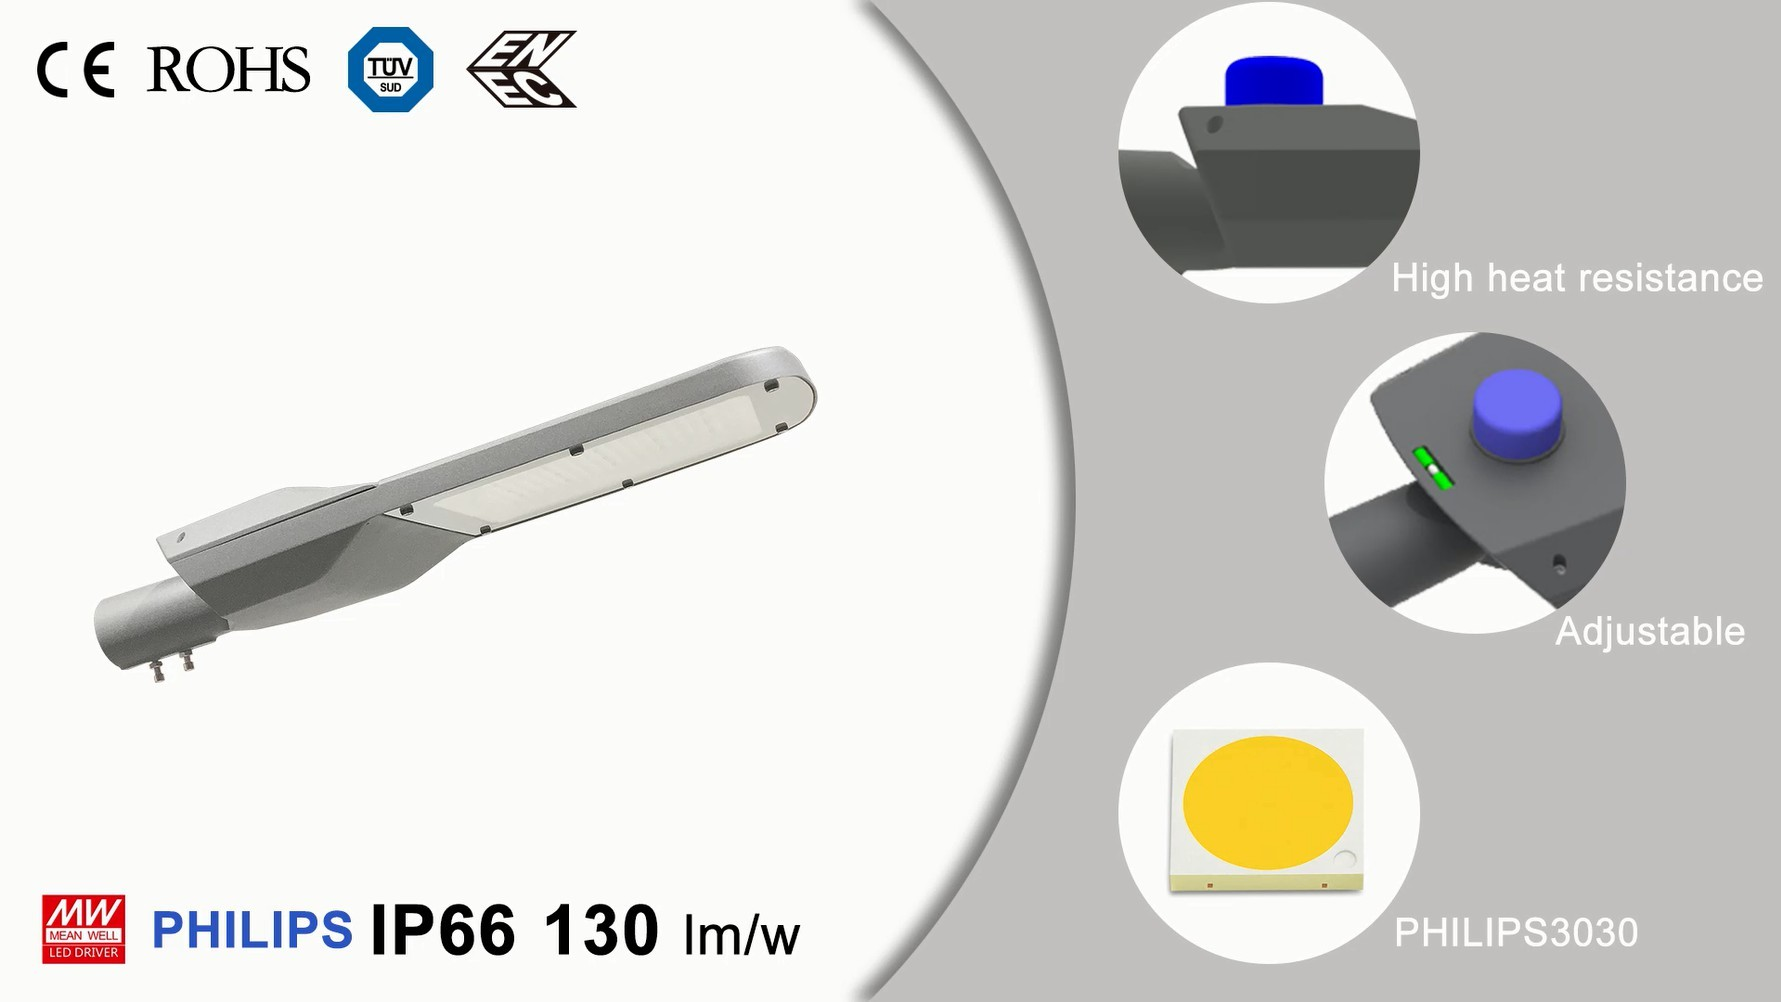 7 different advantages of our LED street light